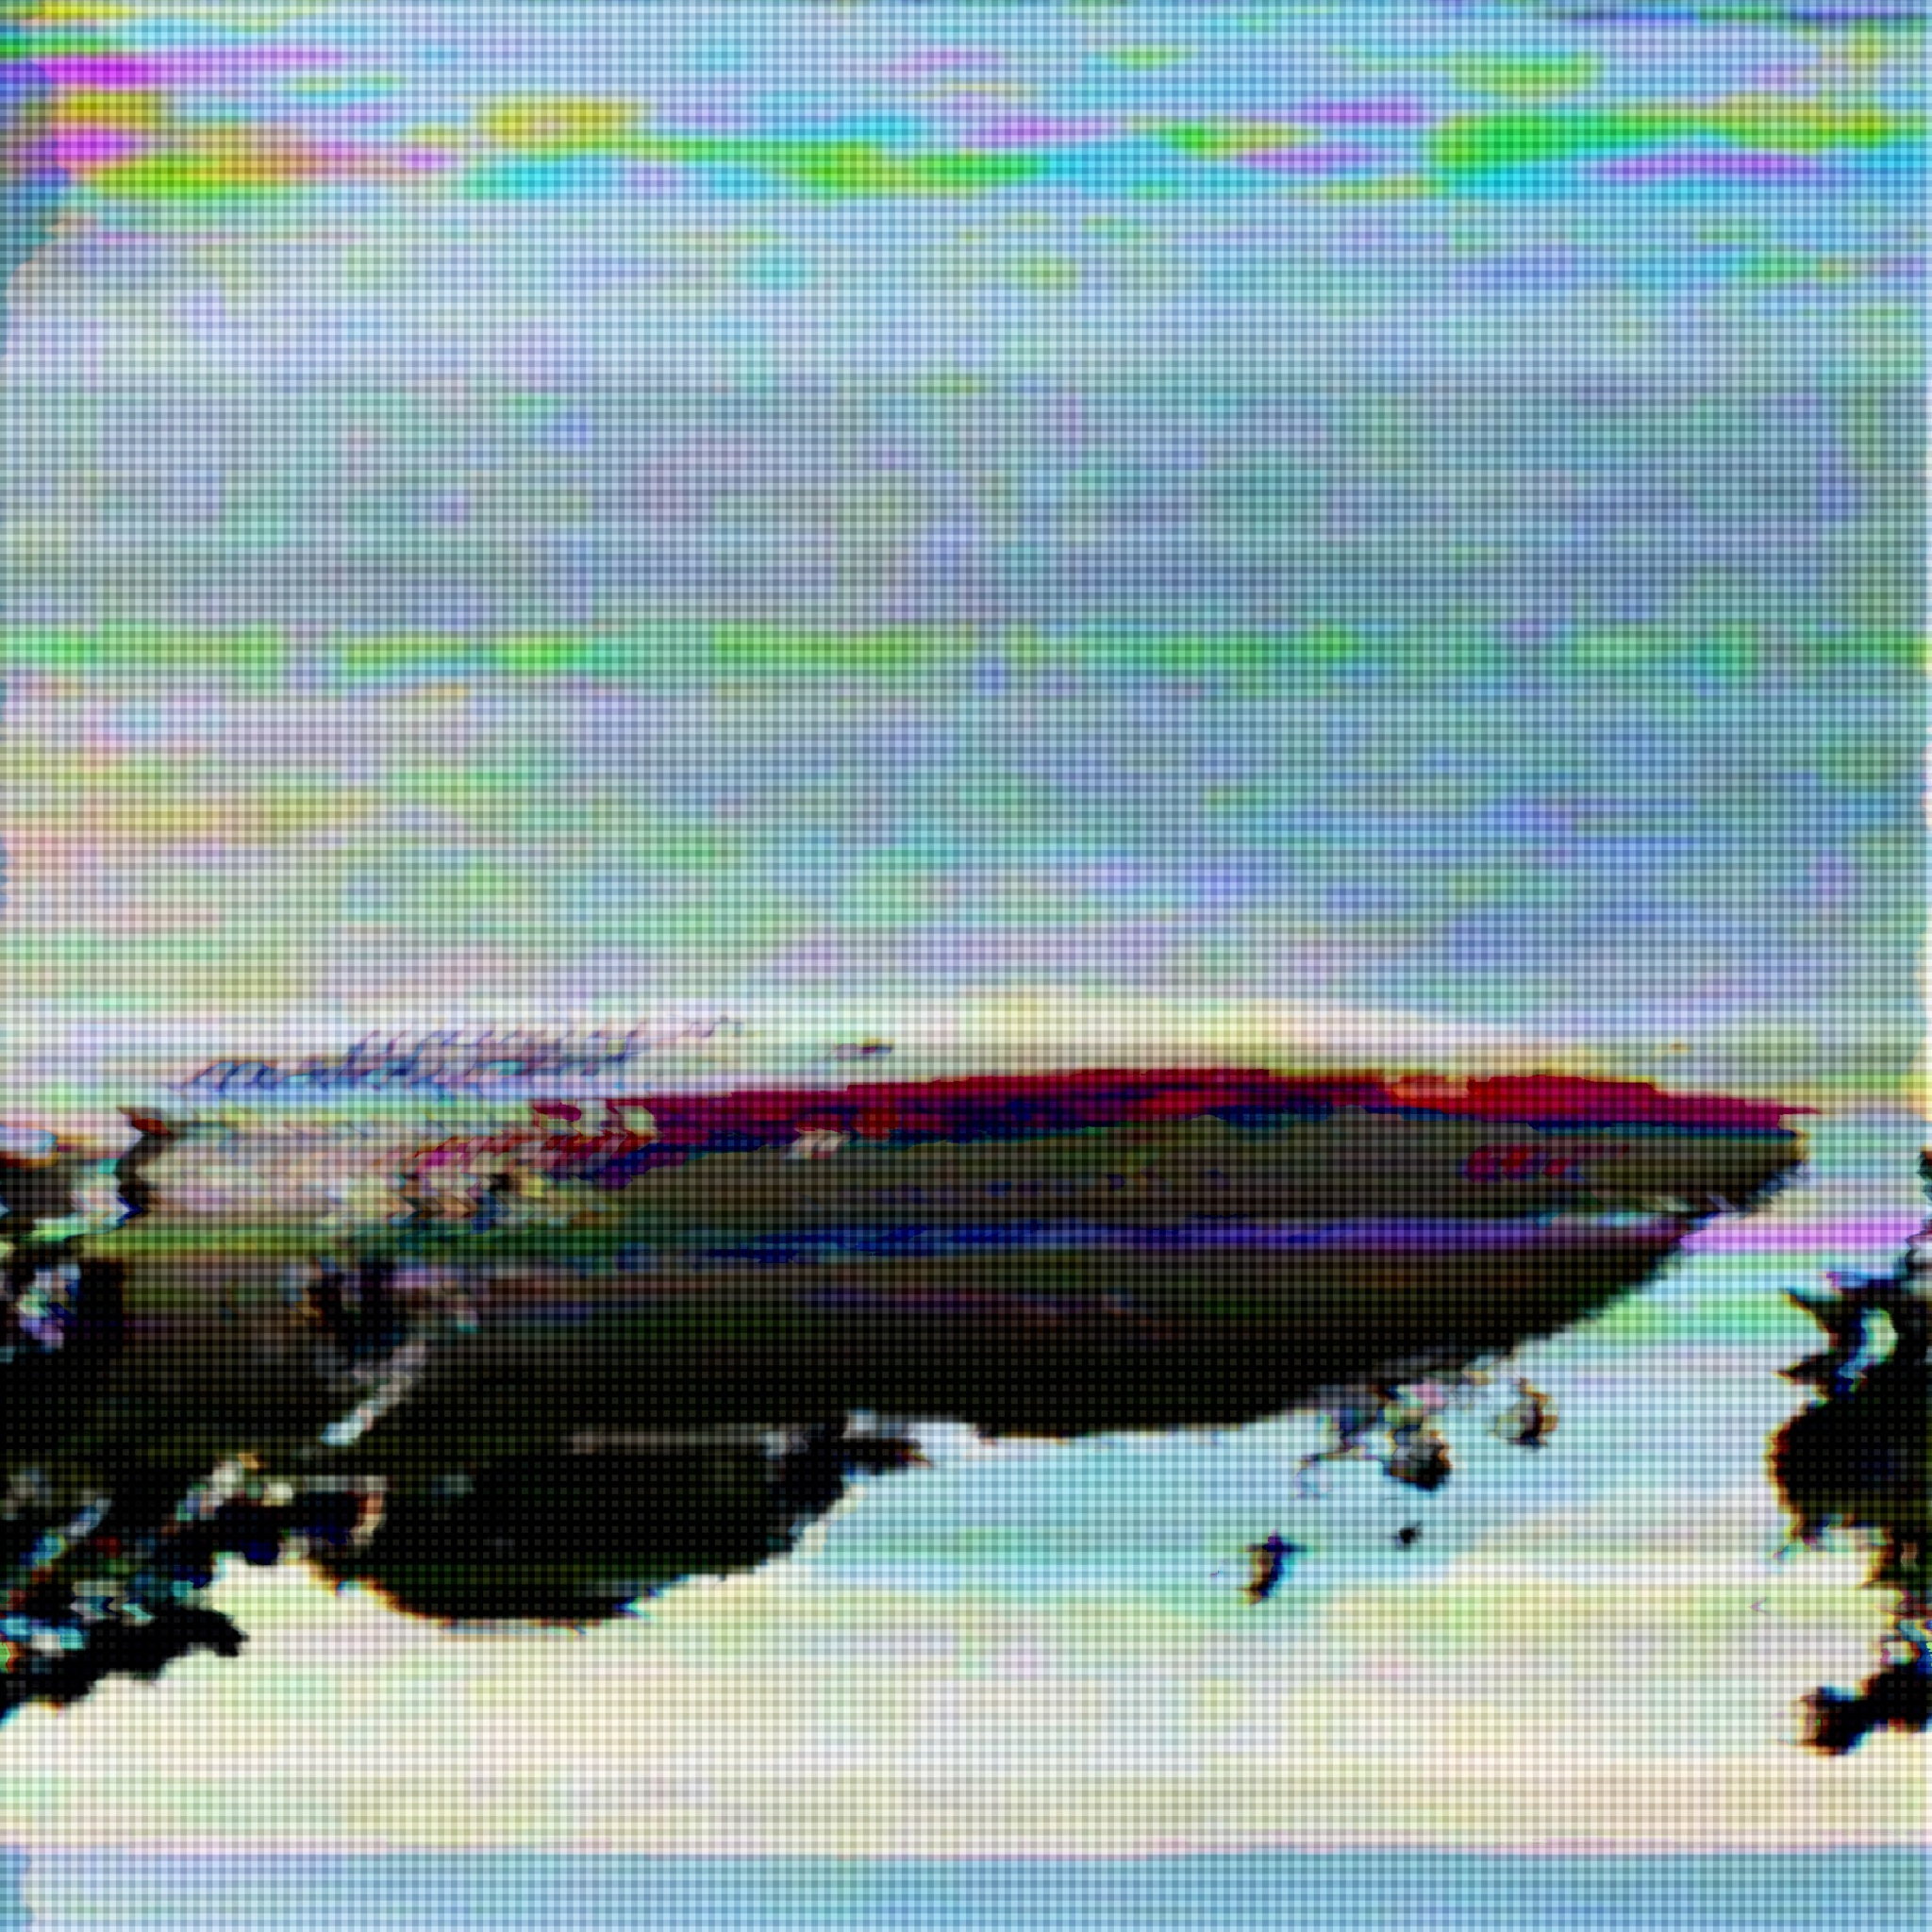 Fading Objects (2014)